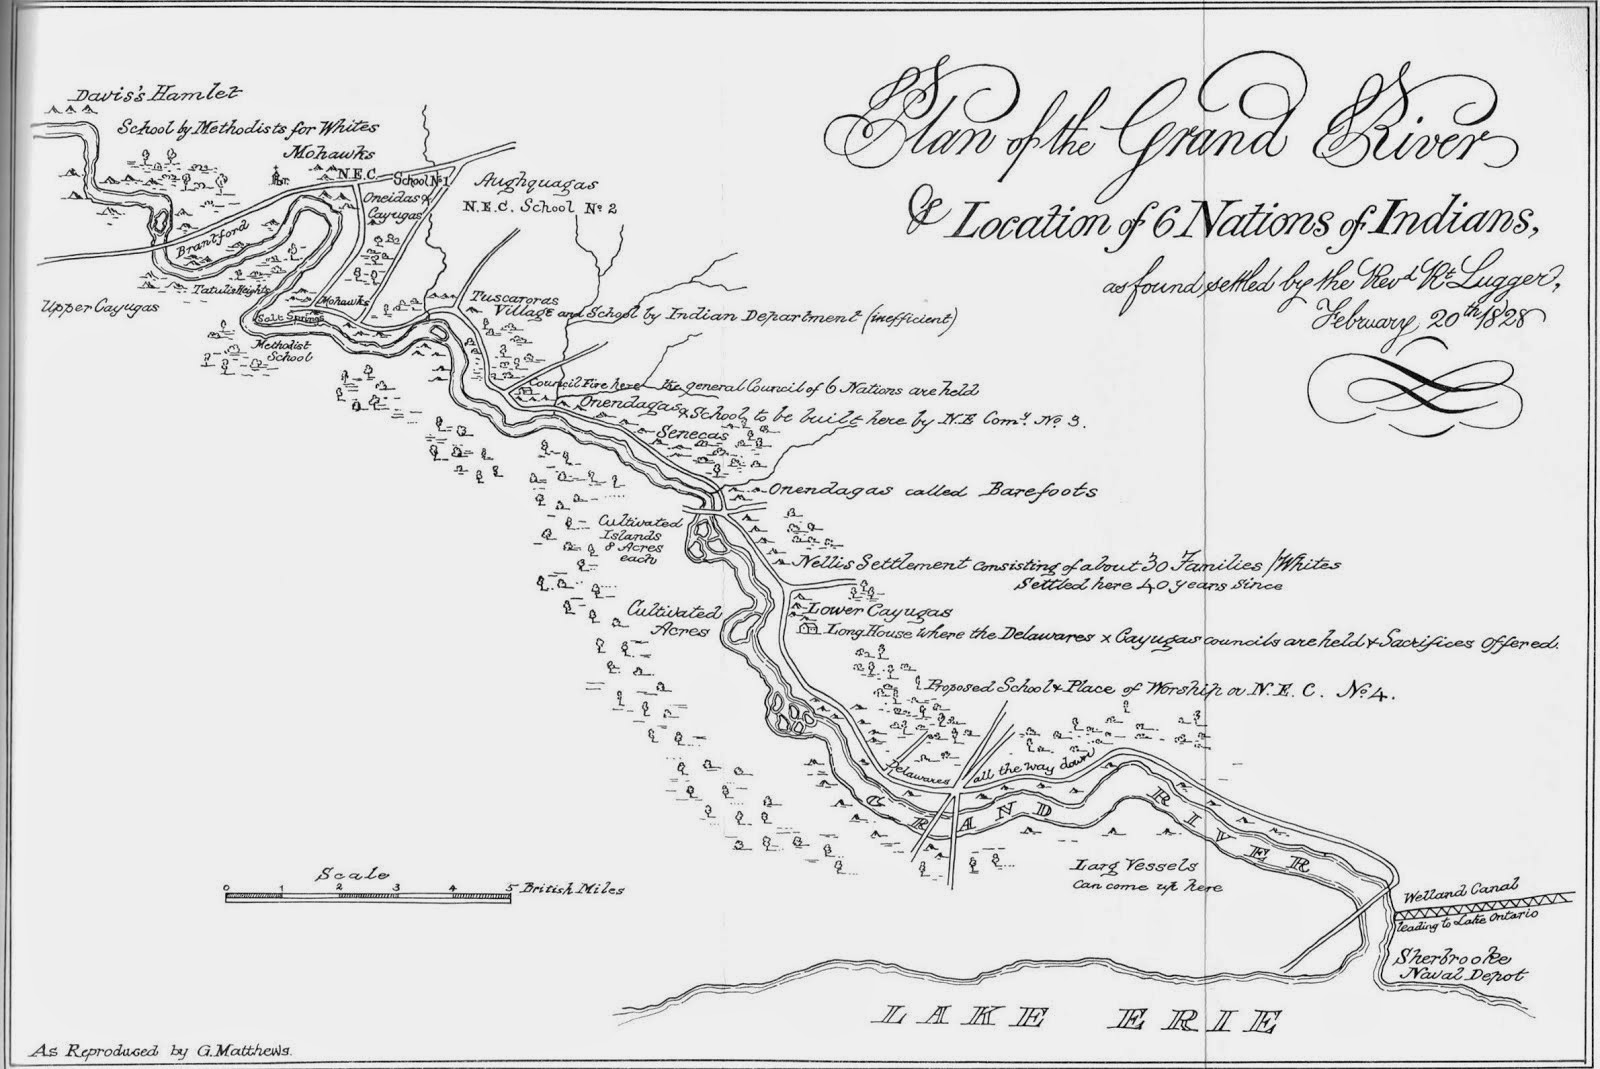 grand river settlement map 1828